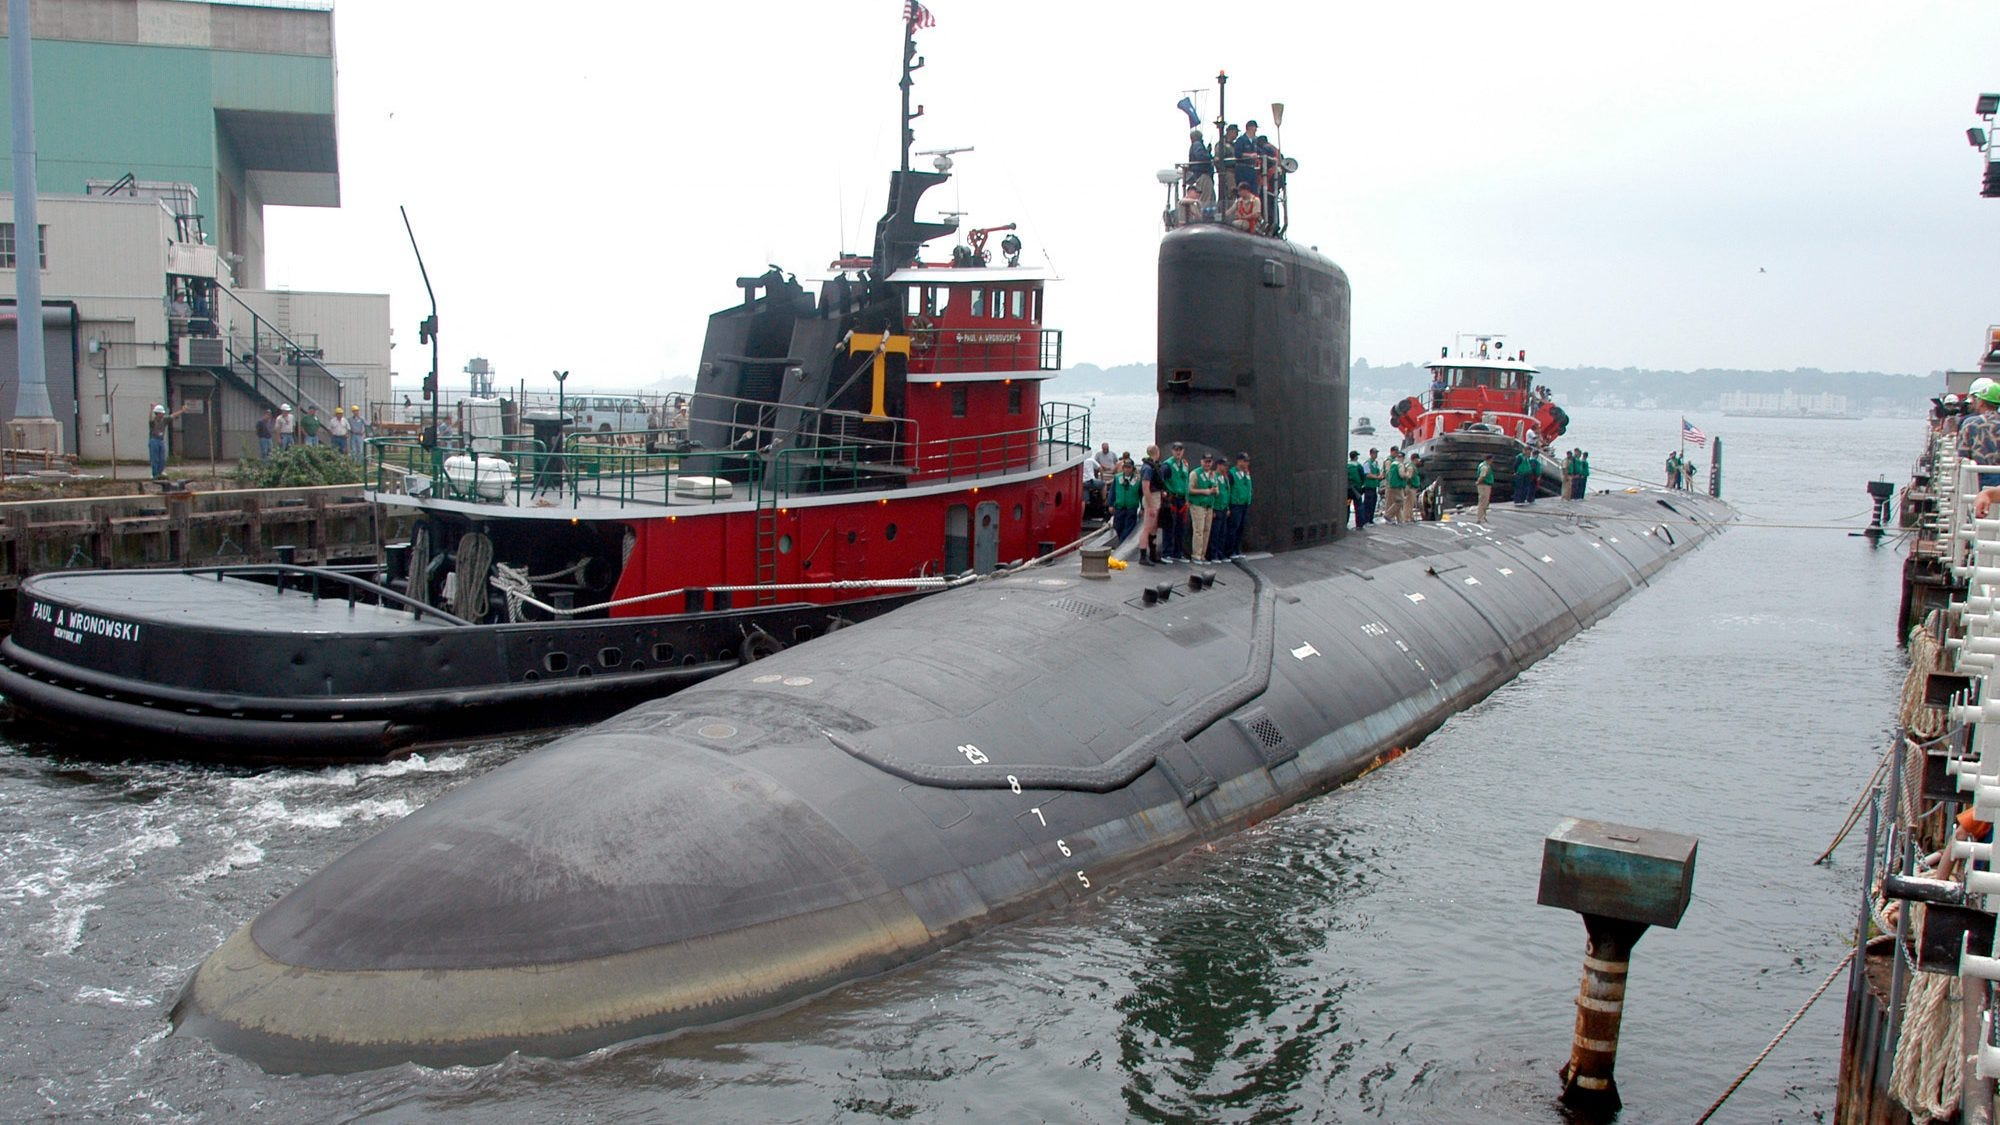 U.S. Navy nuclear engineer charged with trying to pass secrets